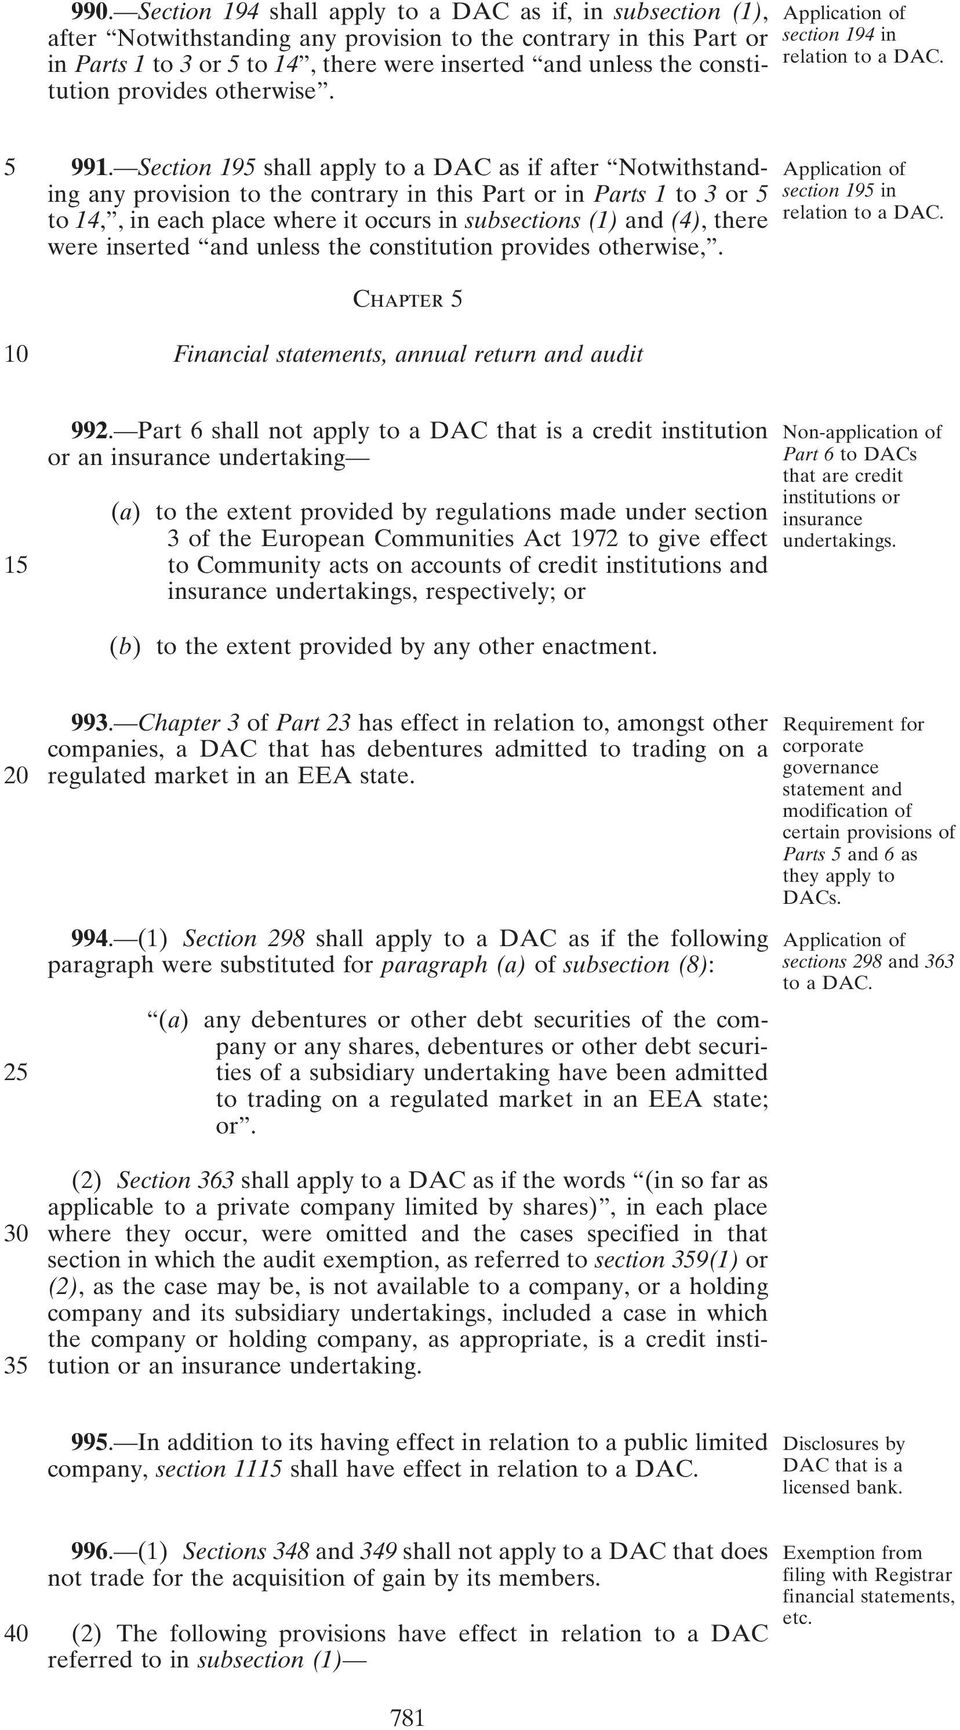 Section 195 shall apply to a DAC as if after Notwithstand- Application of ing any provision to the contrary in this Part or in Parts 1 to 3 or 5 section 195 in to 14,, in each place where it occurs